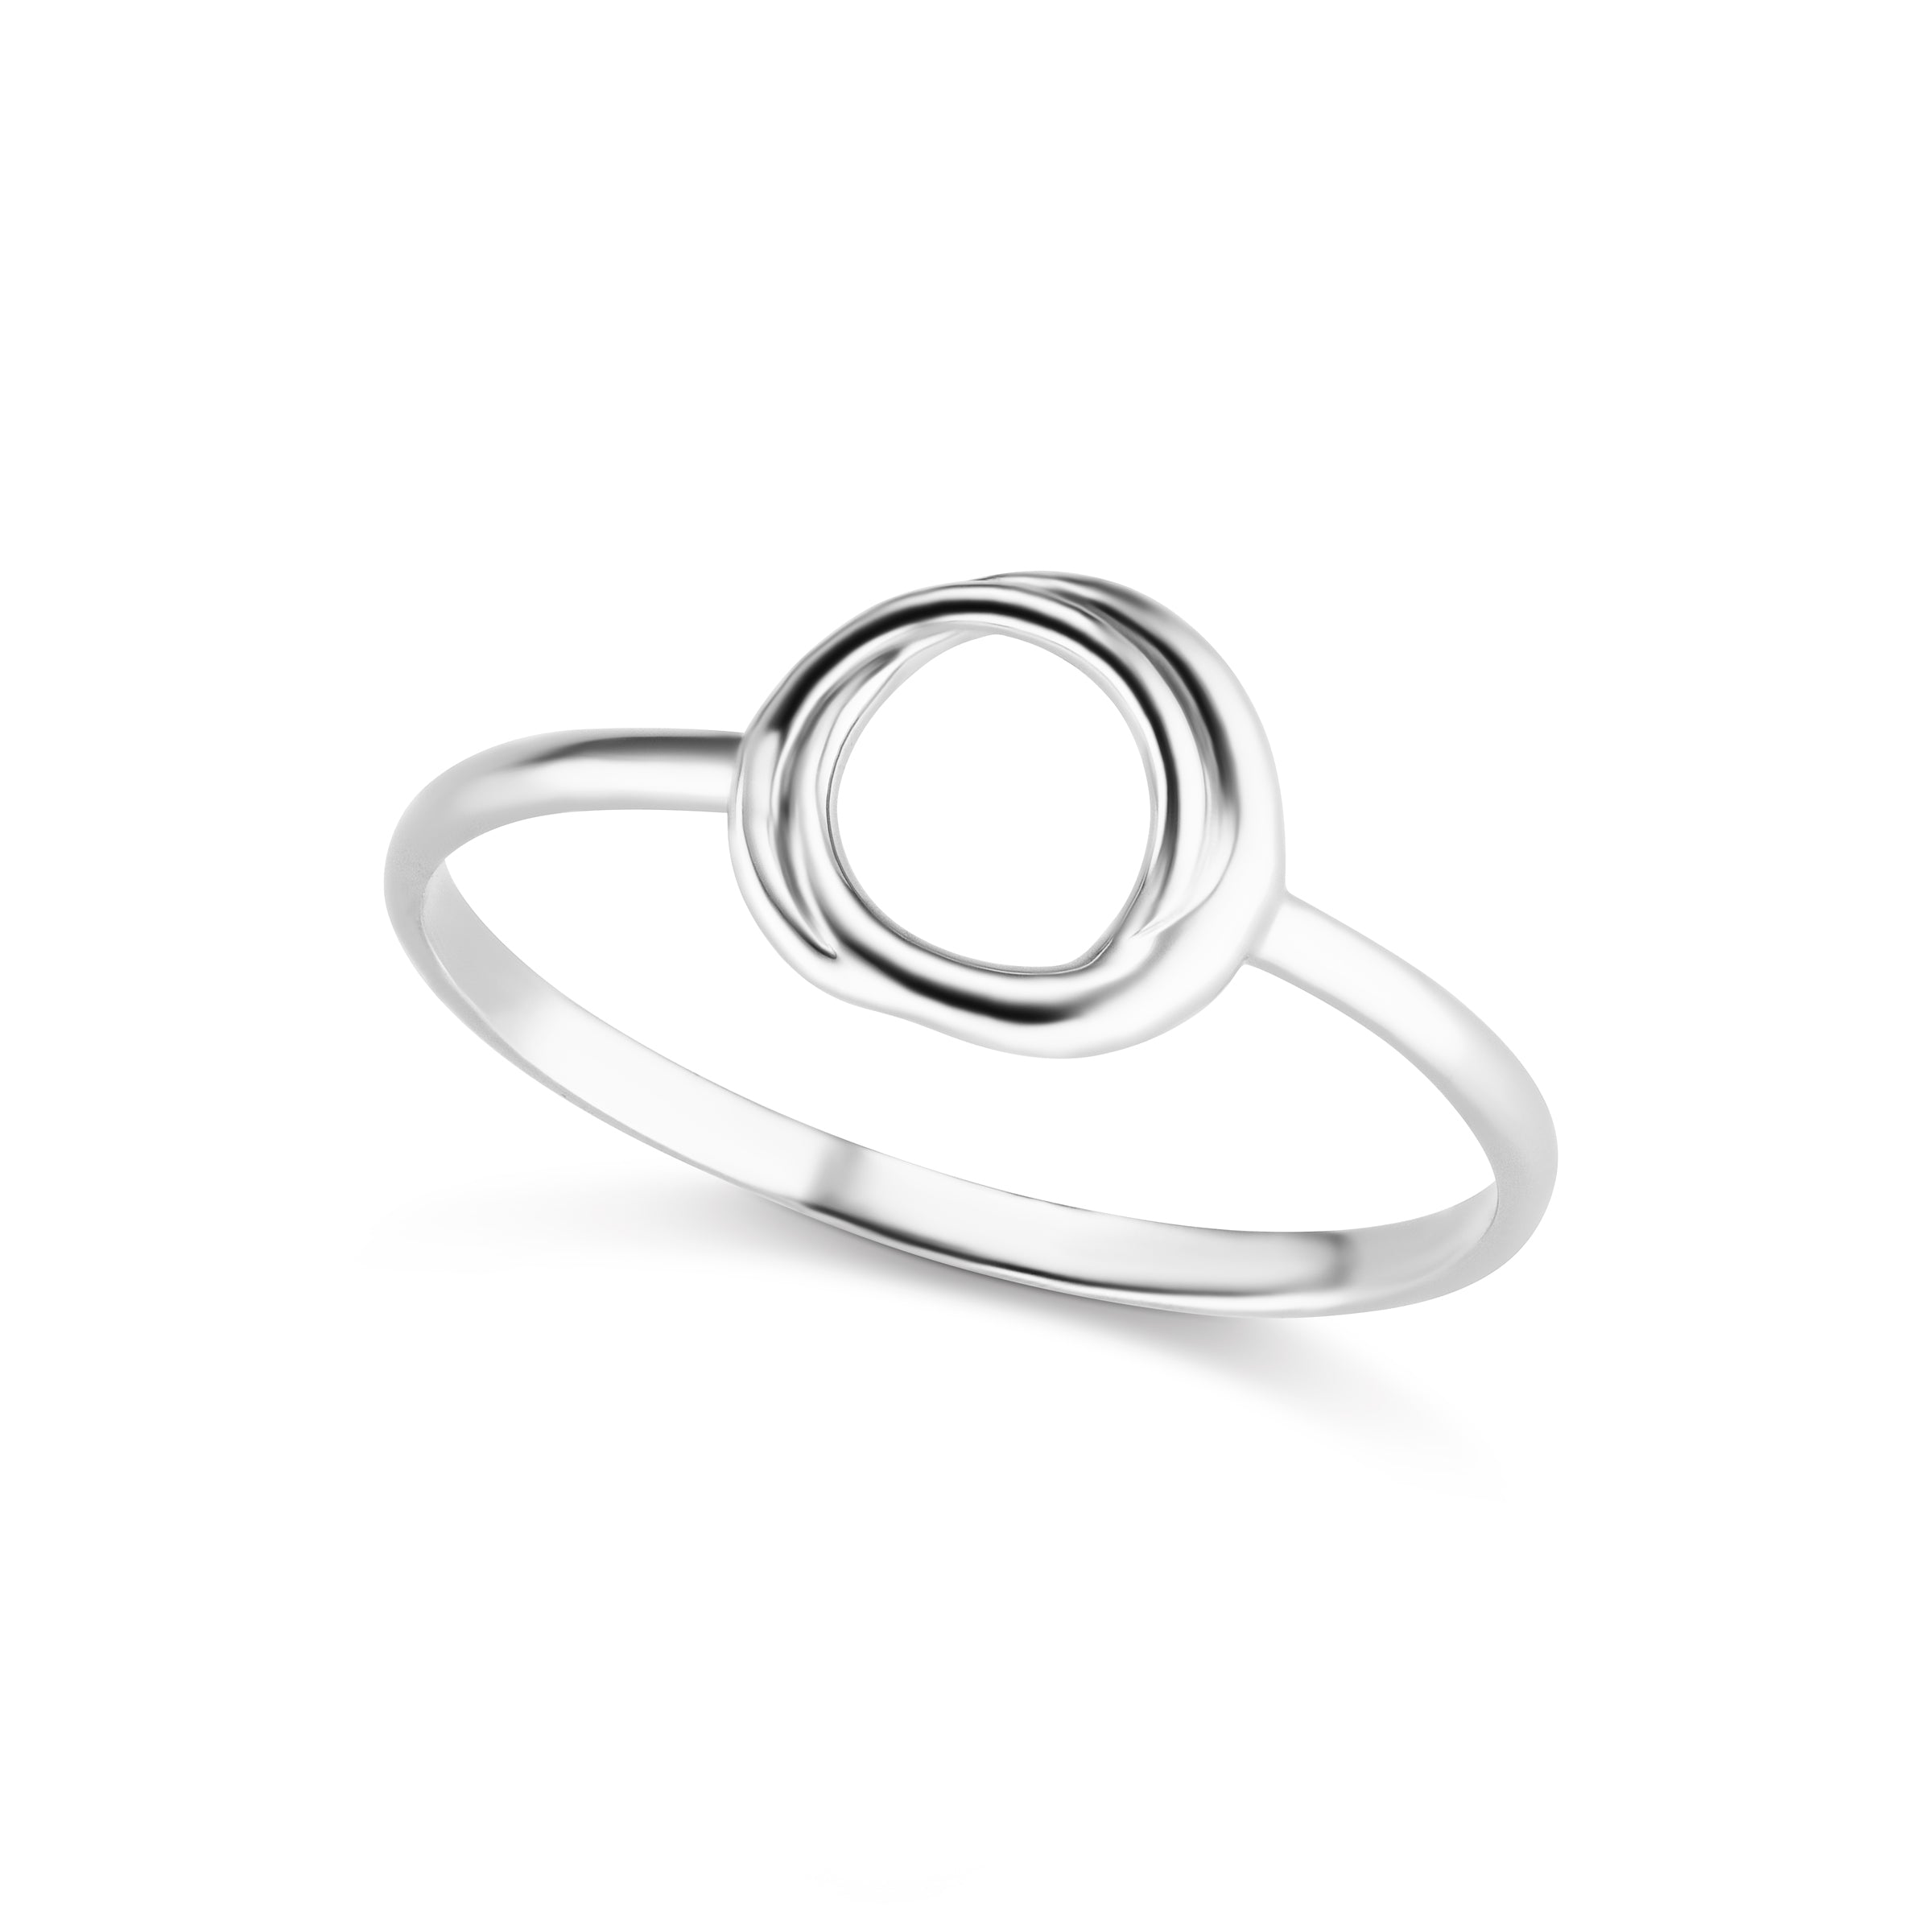 The Silver Encircle Ring